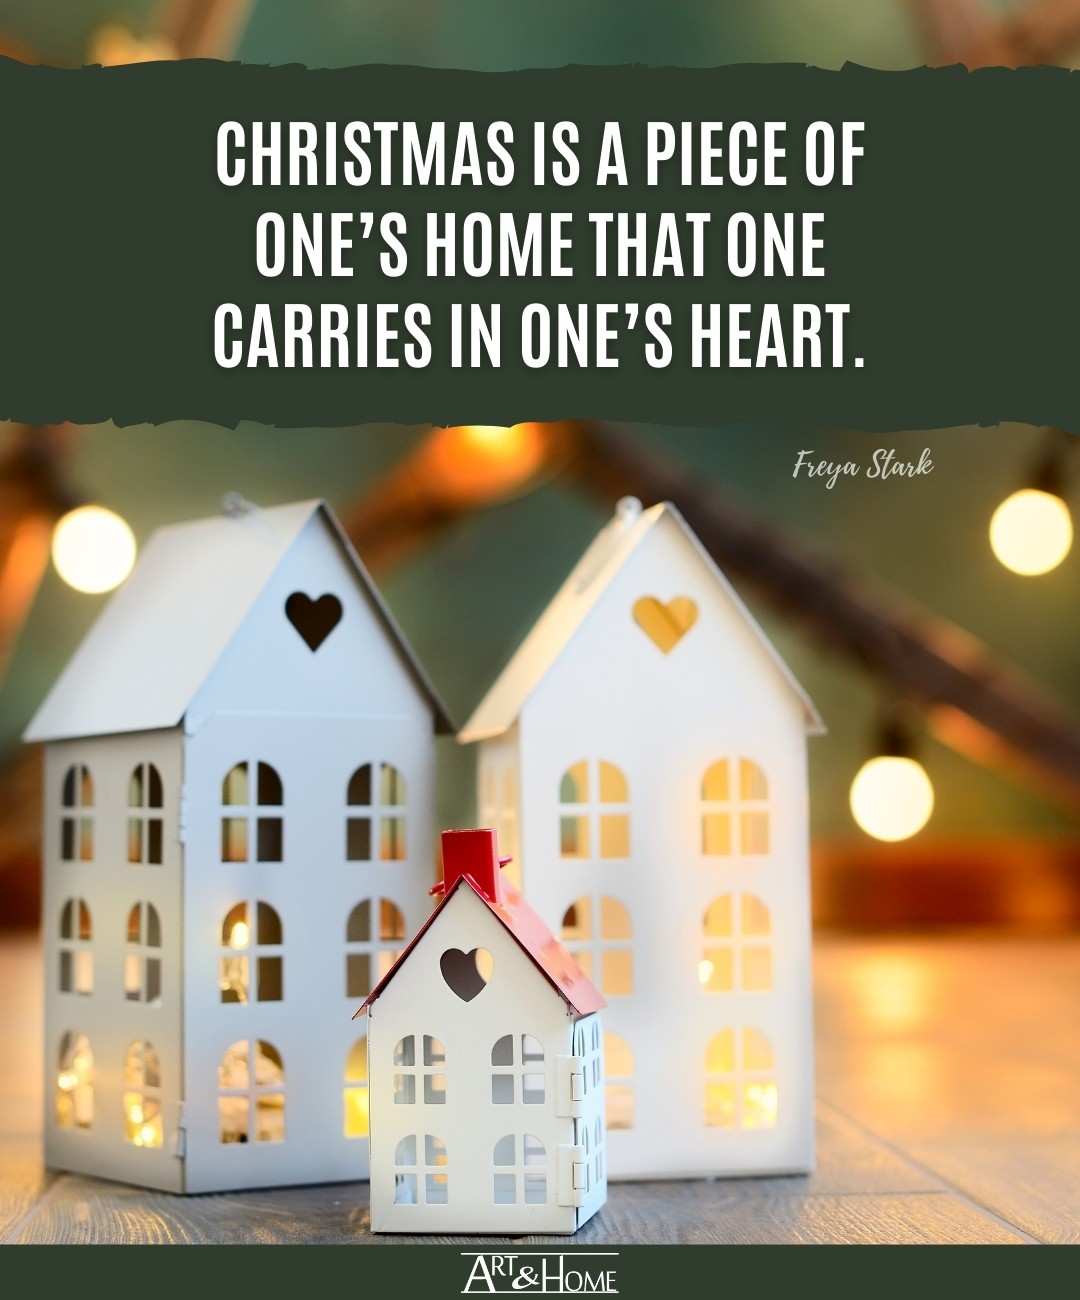 Christmas is a piece of one's home that one carries in one's heart. Freya Stark saying.